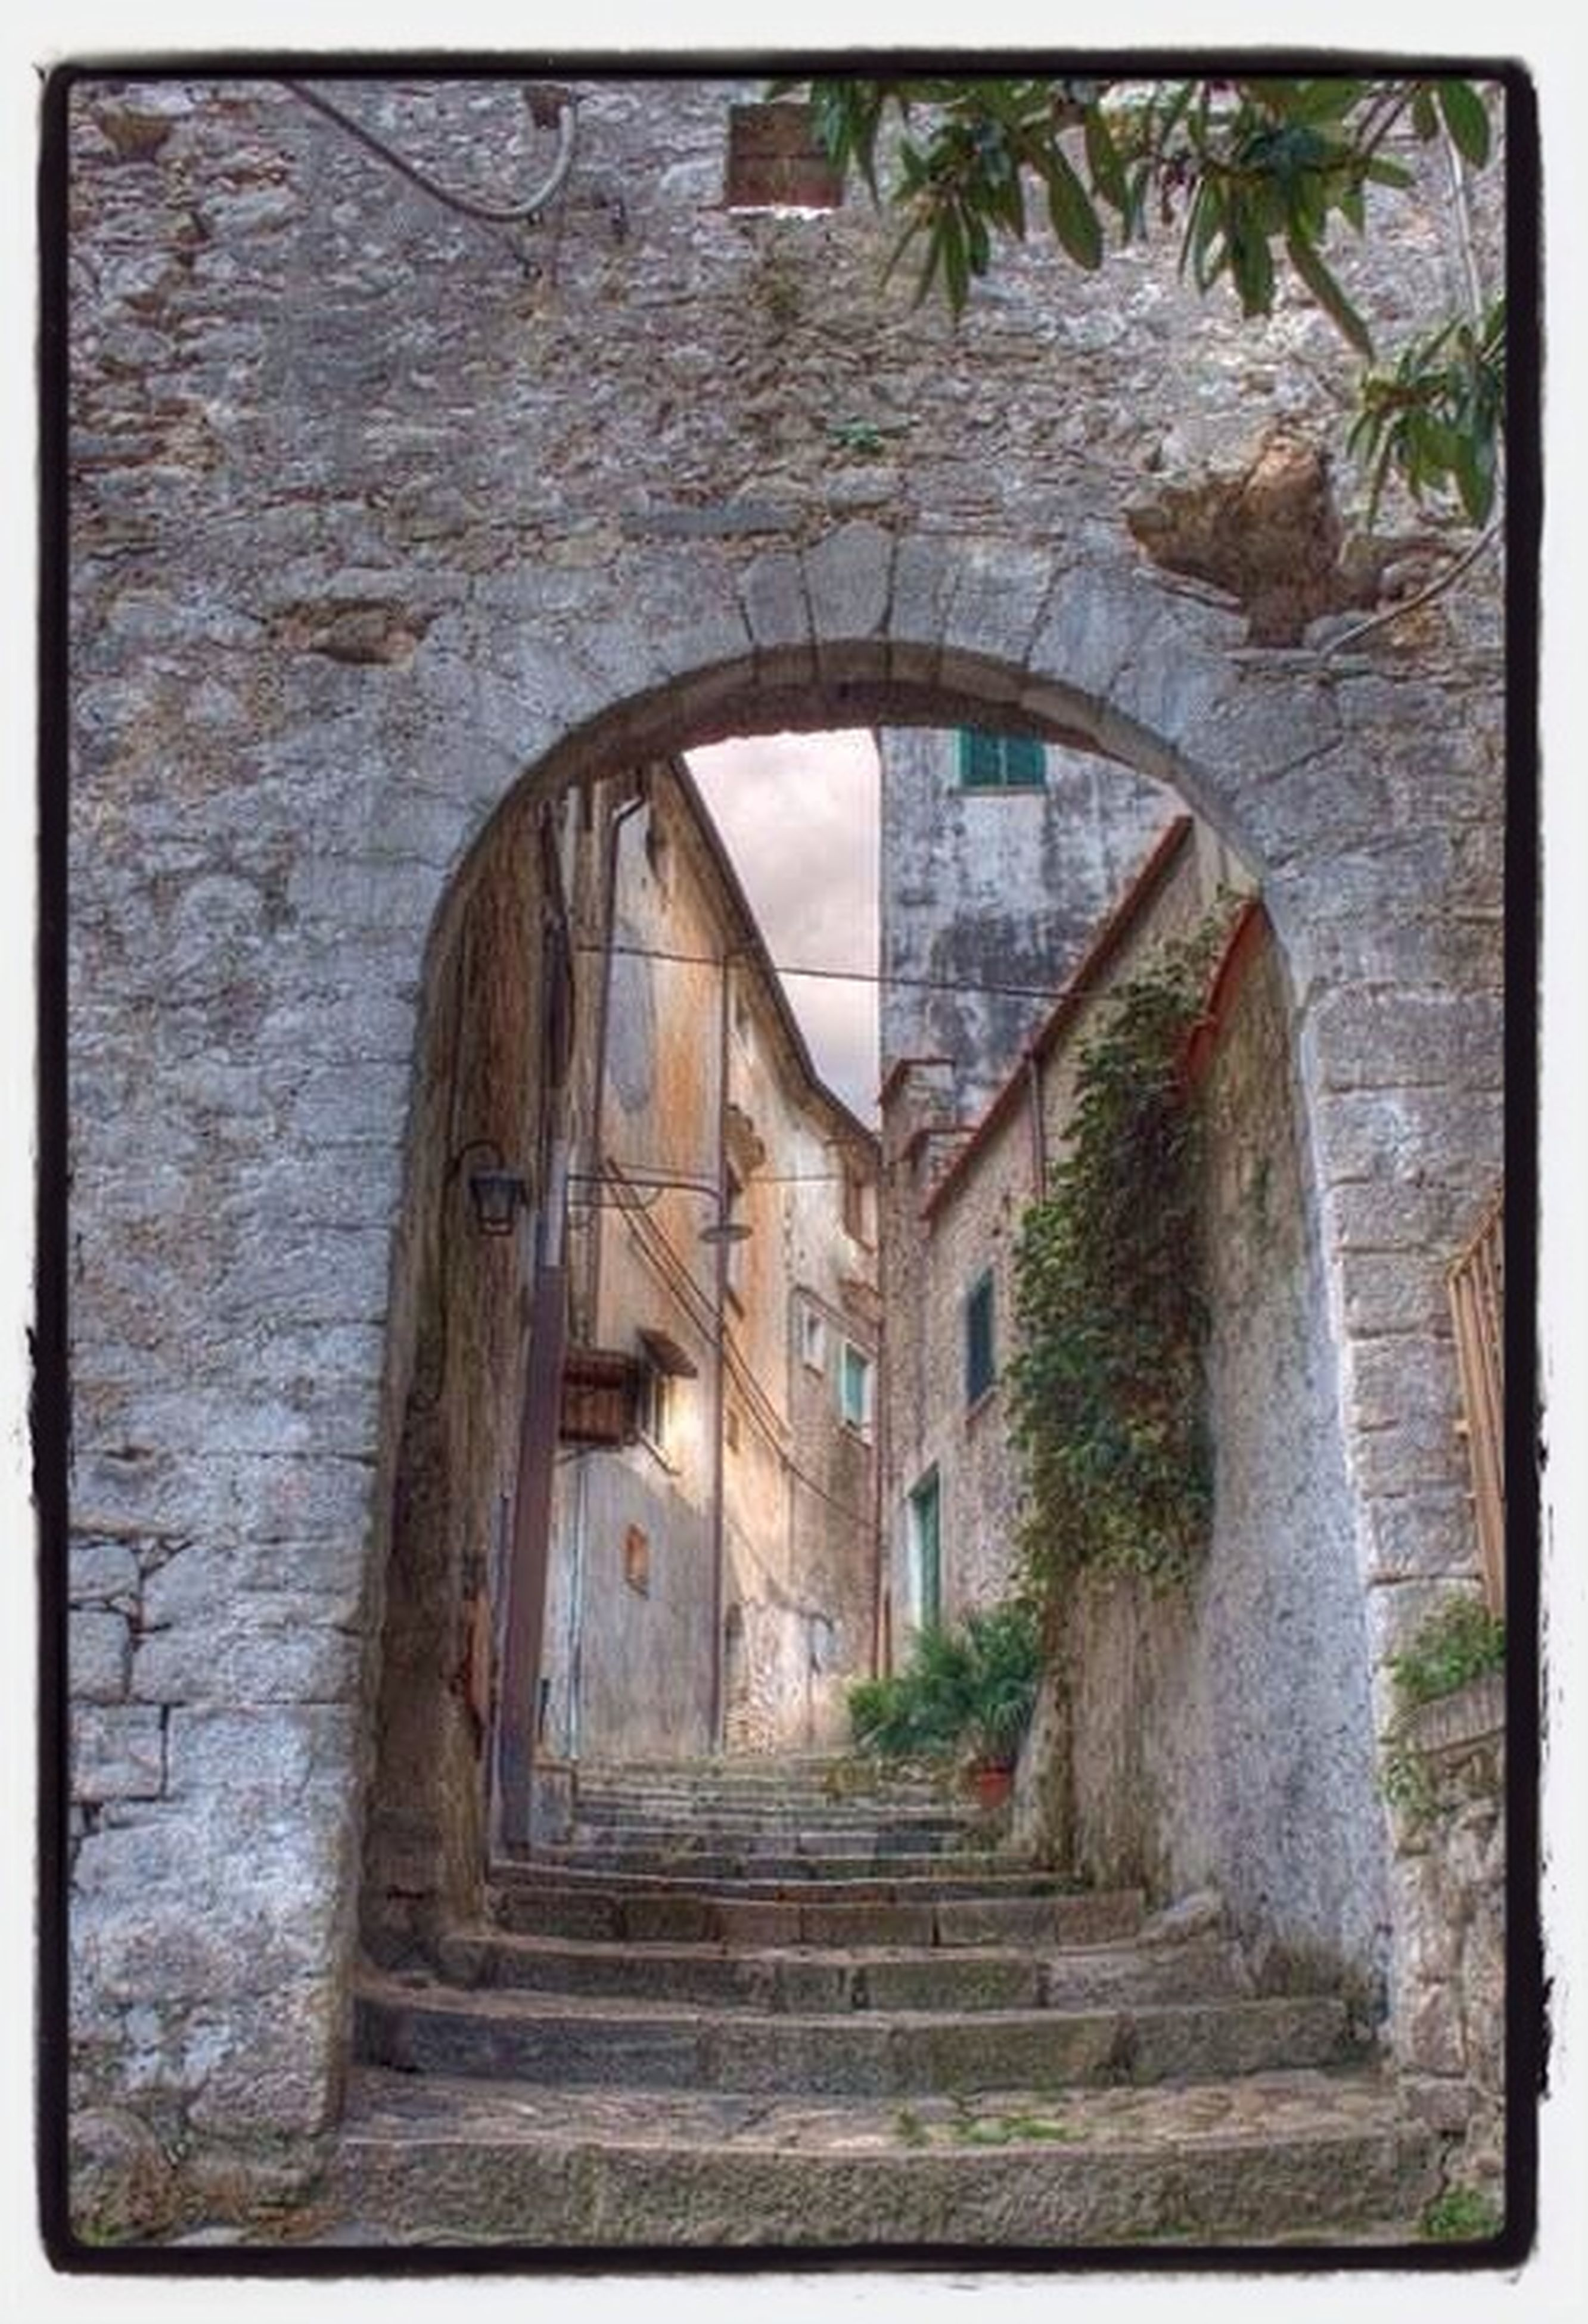 architecture, built structure, arch, old, building exterior, steps, entrance, door, house, transfer print, indoors, abandoned, steps and staircases, auto post production filter, archway, weathered, staircase, wall - building feature, building, doorway